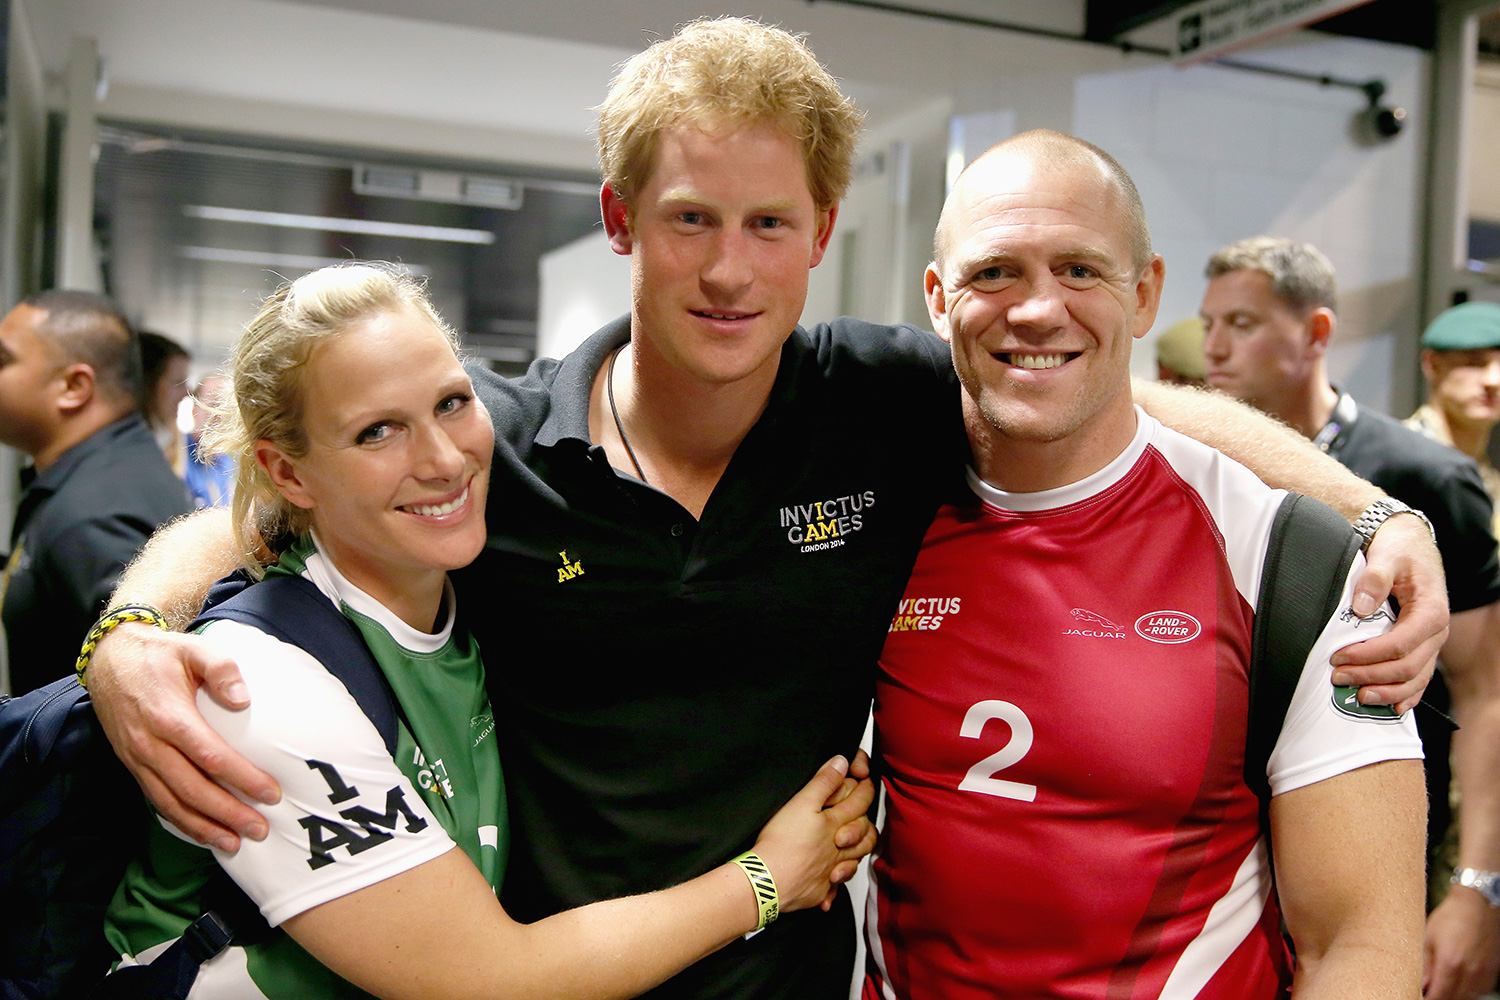 Prince Harry, Zara Phillips and Mike Tindall pose for a photograph after competing in an Exhibition wheelchair rugby match at the Copper Box ahead of tonight's exhibition match as part of the Invictus Games at Queen Elizabeth park on September 12, 2014 in London, England